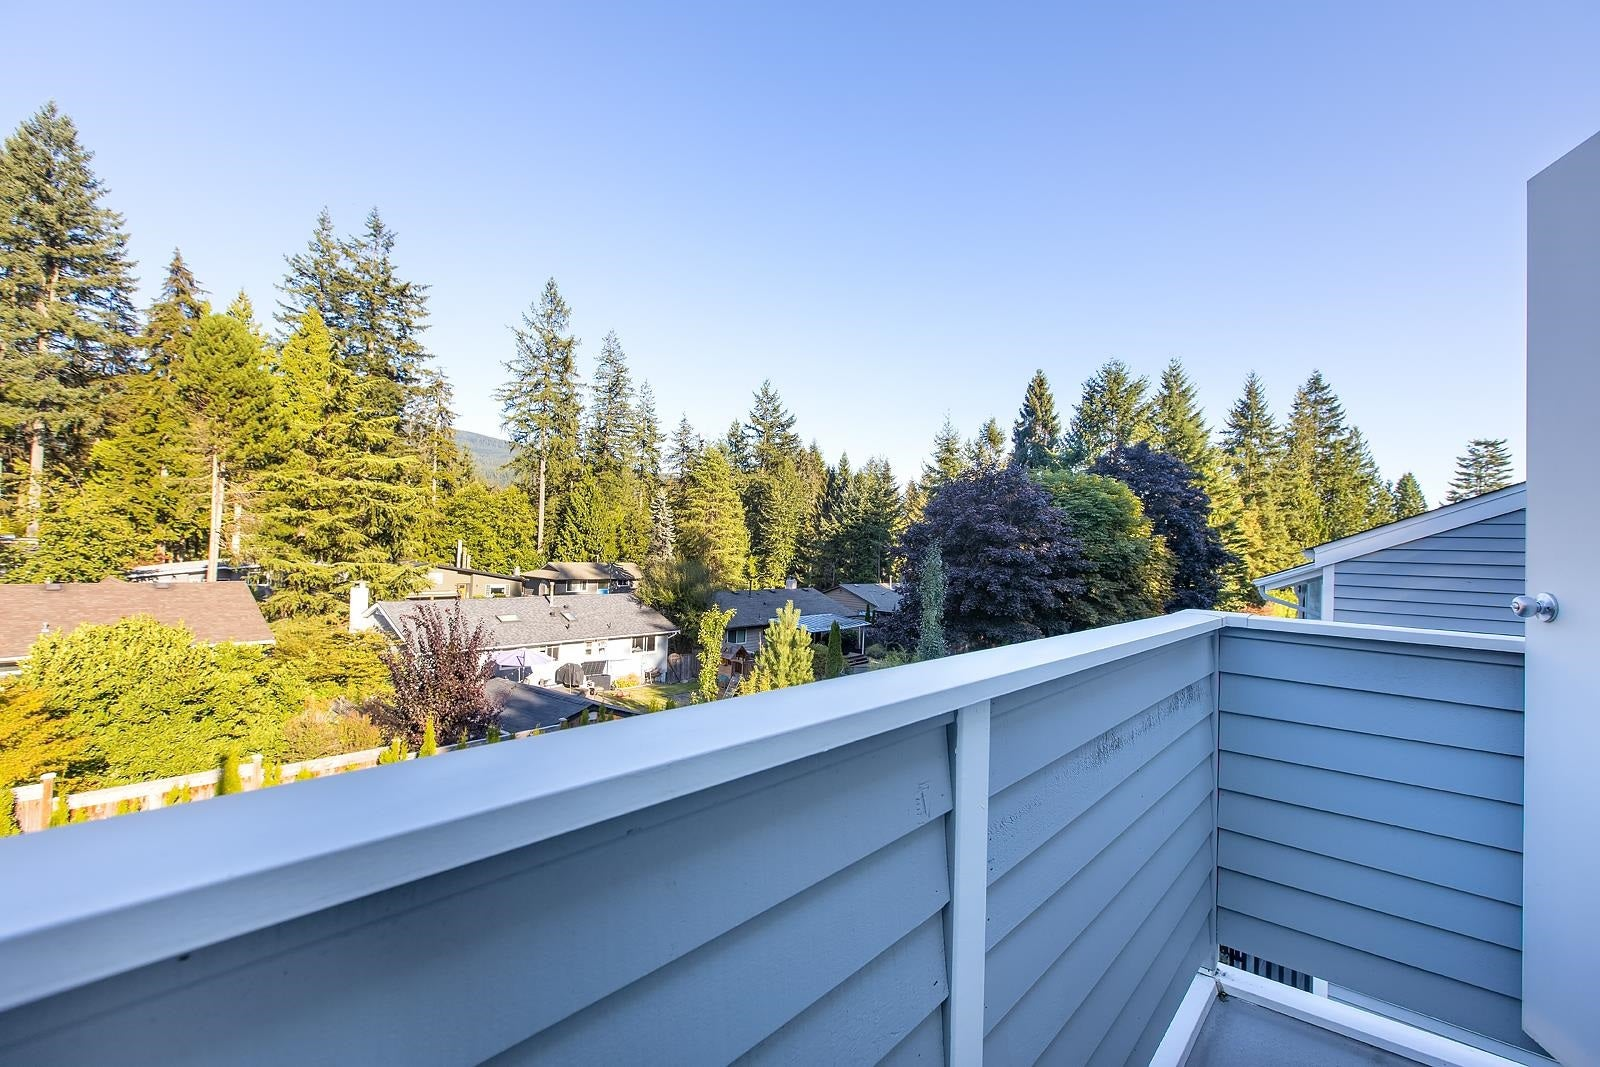 4763 HOSKINS ROAD - Lynn Valley Townhouse for sale, 3 Bedrooms (R2617725) - #18